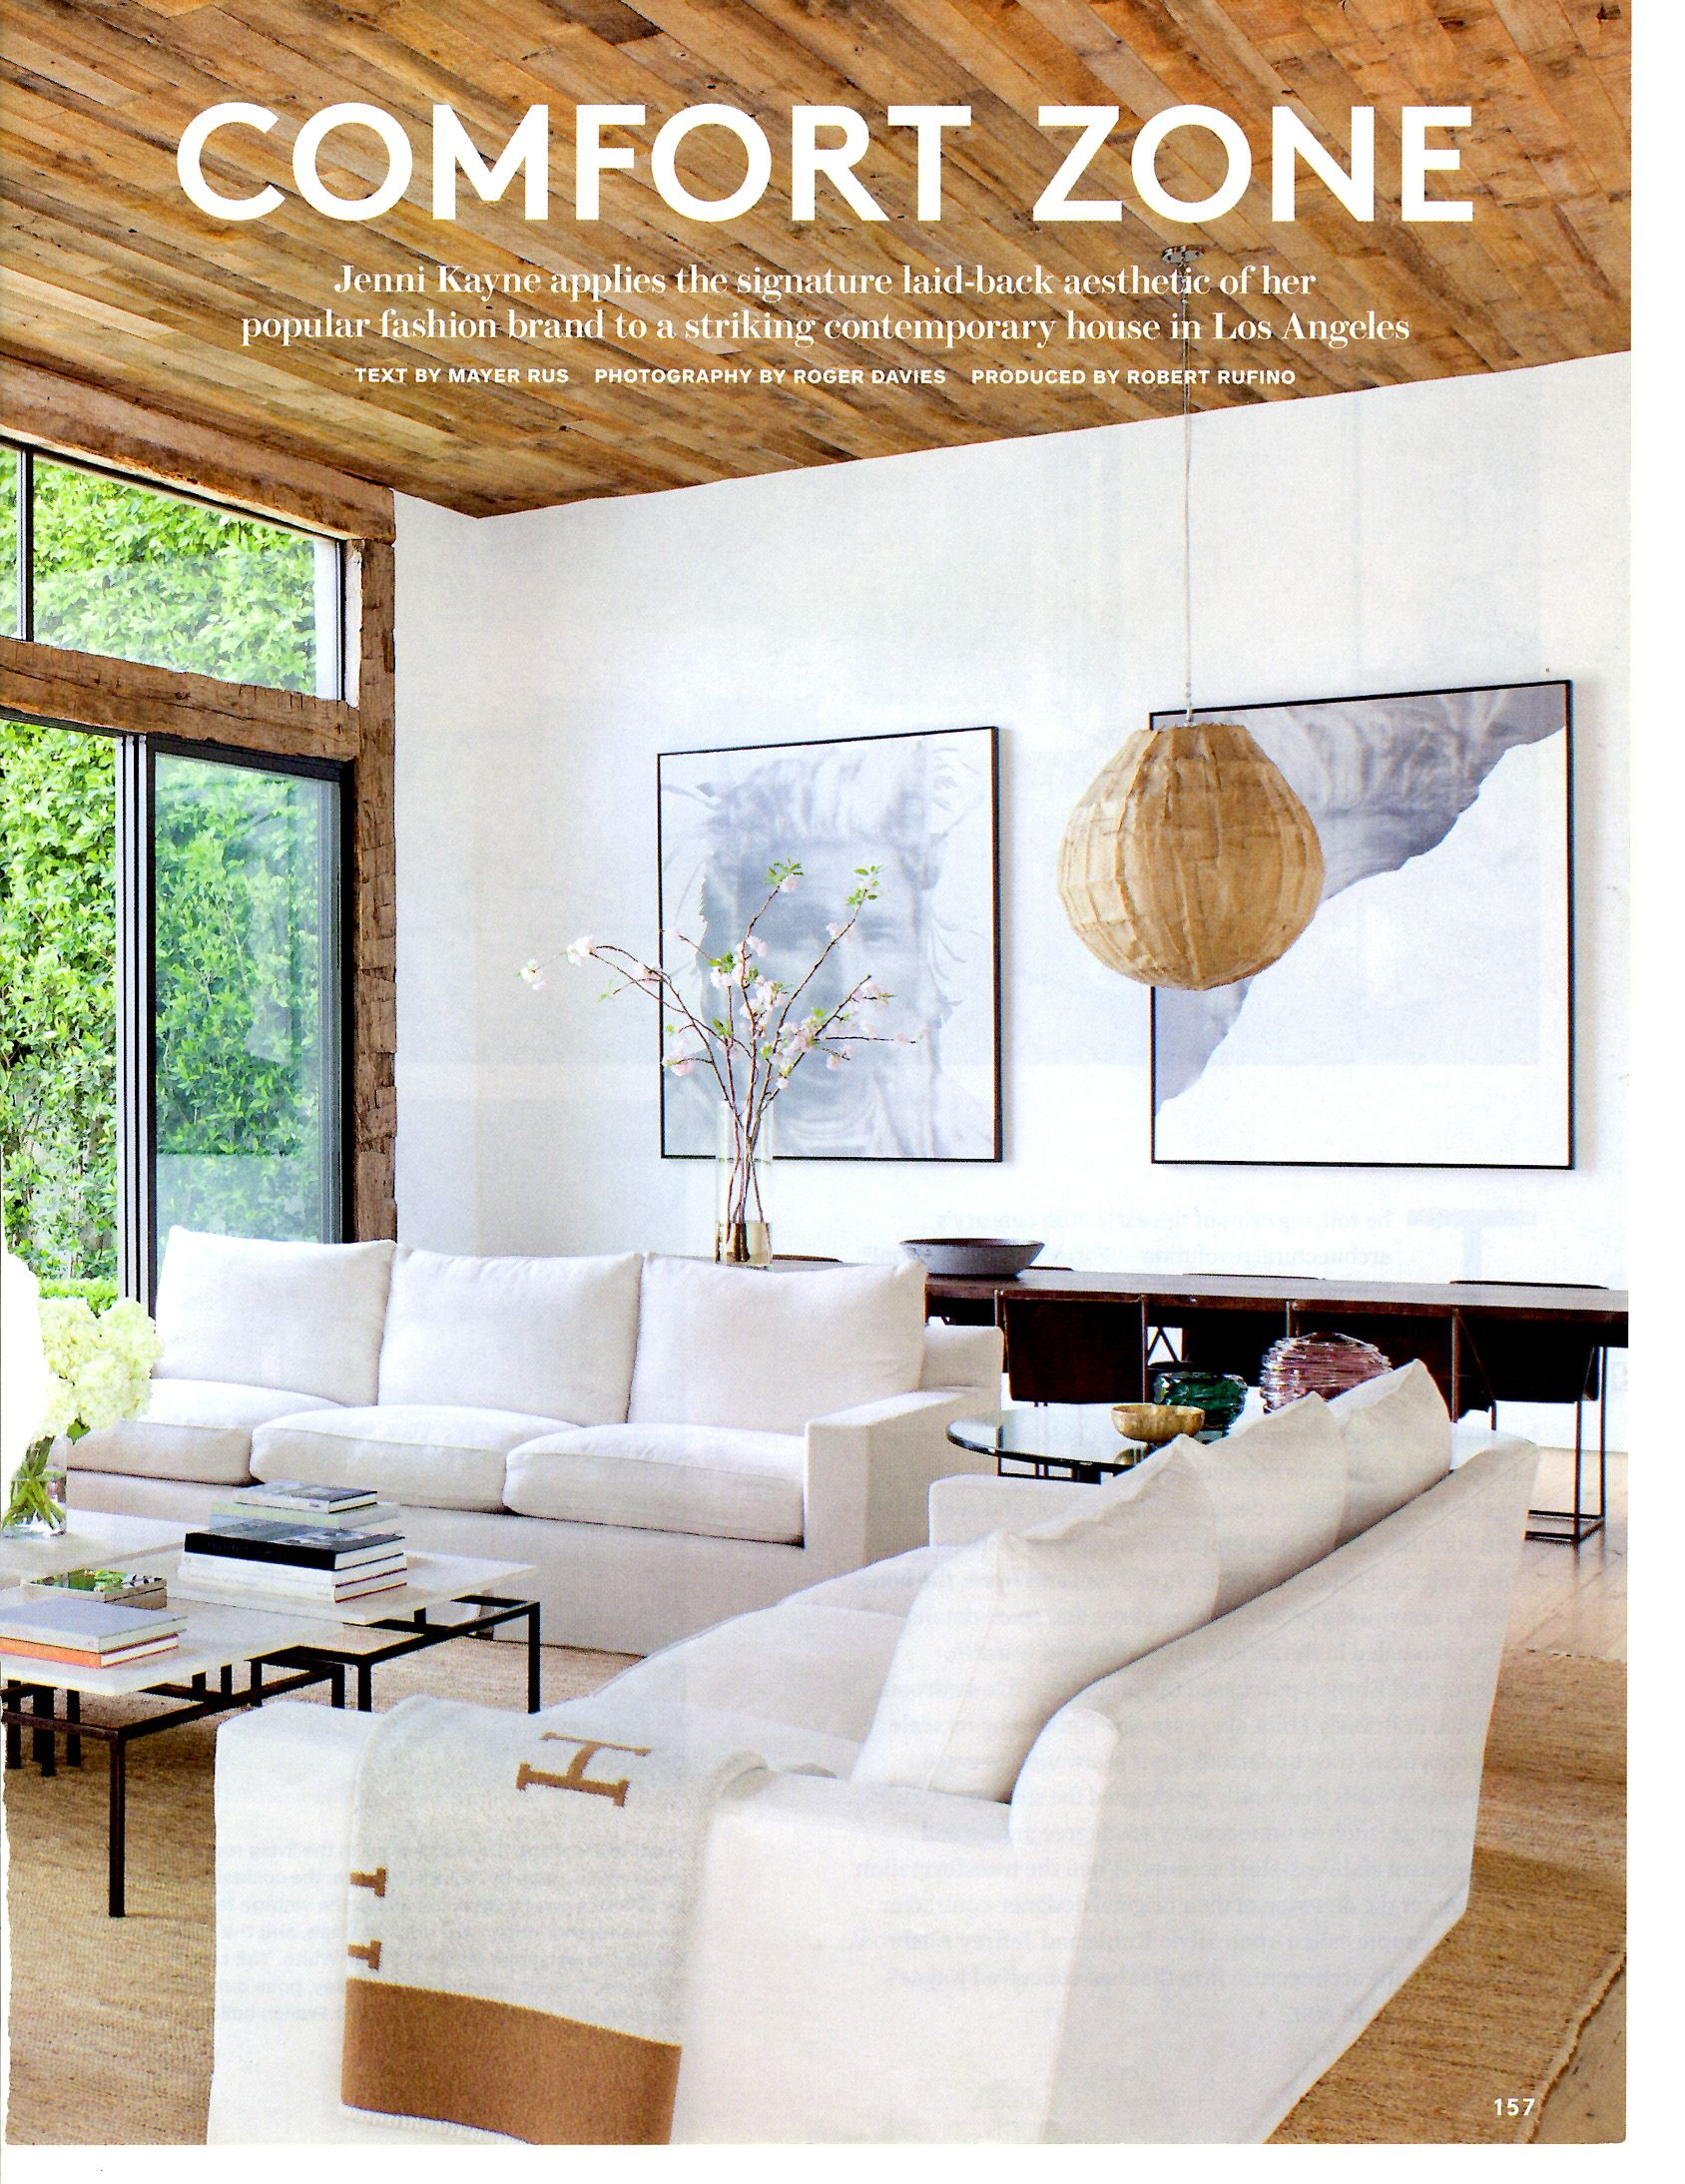 Pin By Sasha Lanka On Sonora Throughout White Couches Comfort Zone Los Angeles Homes